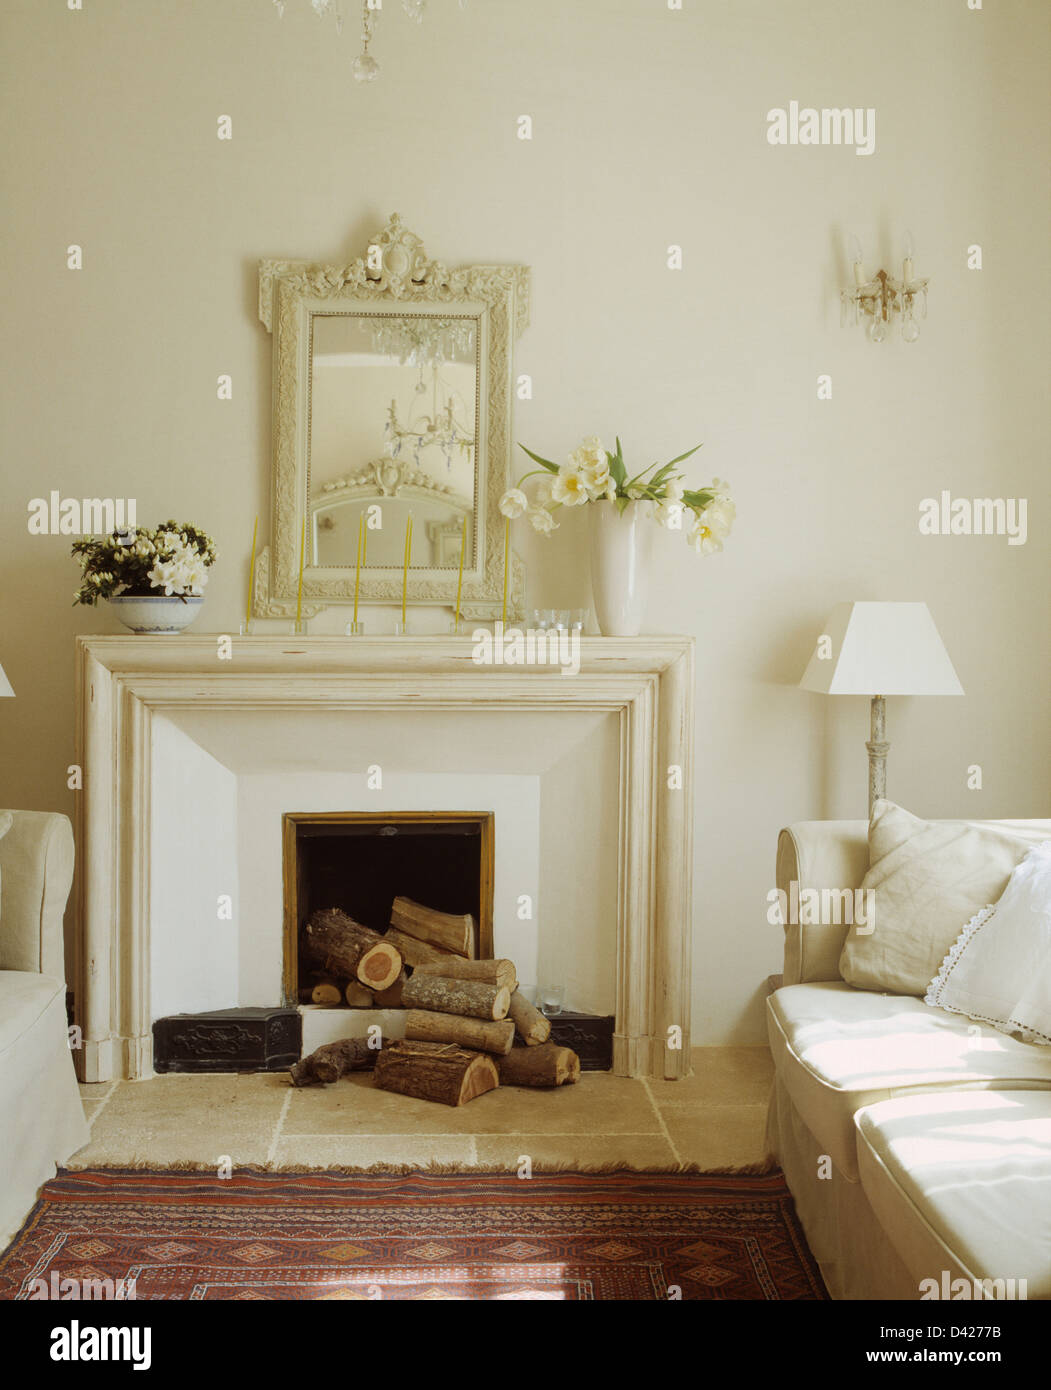 White Painted Craved Mirror Above Simple Fireplace With Logs In White  French Country Living Room With White Sofas